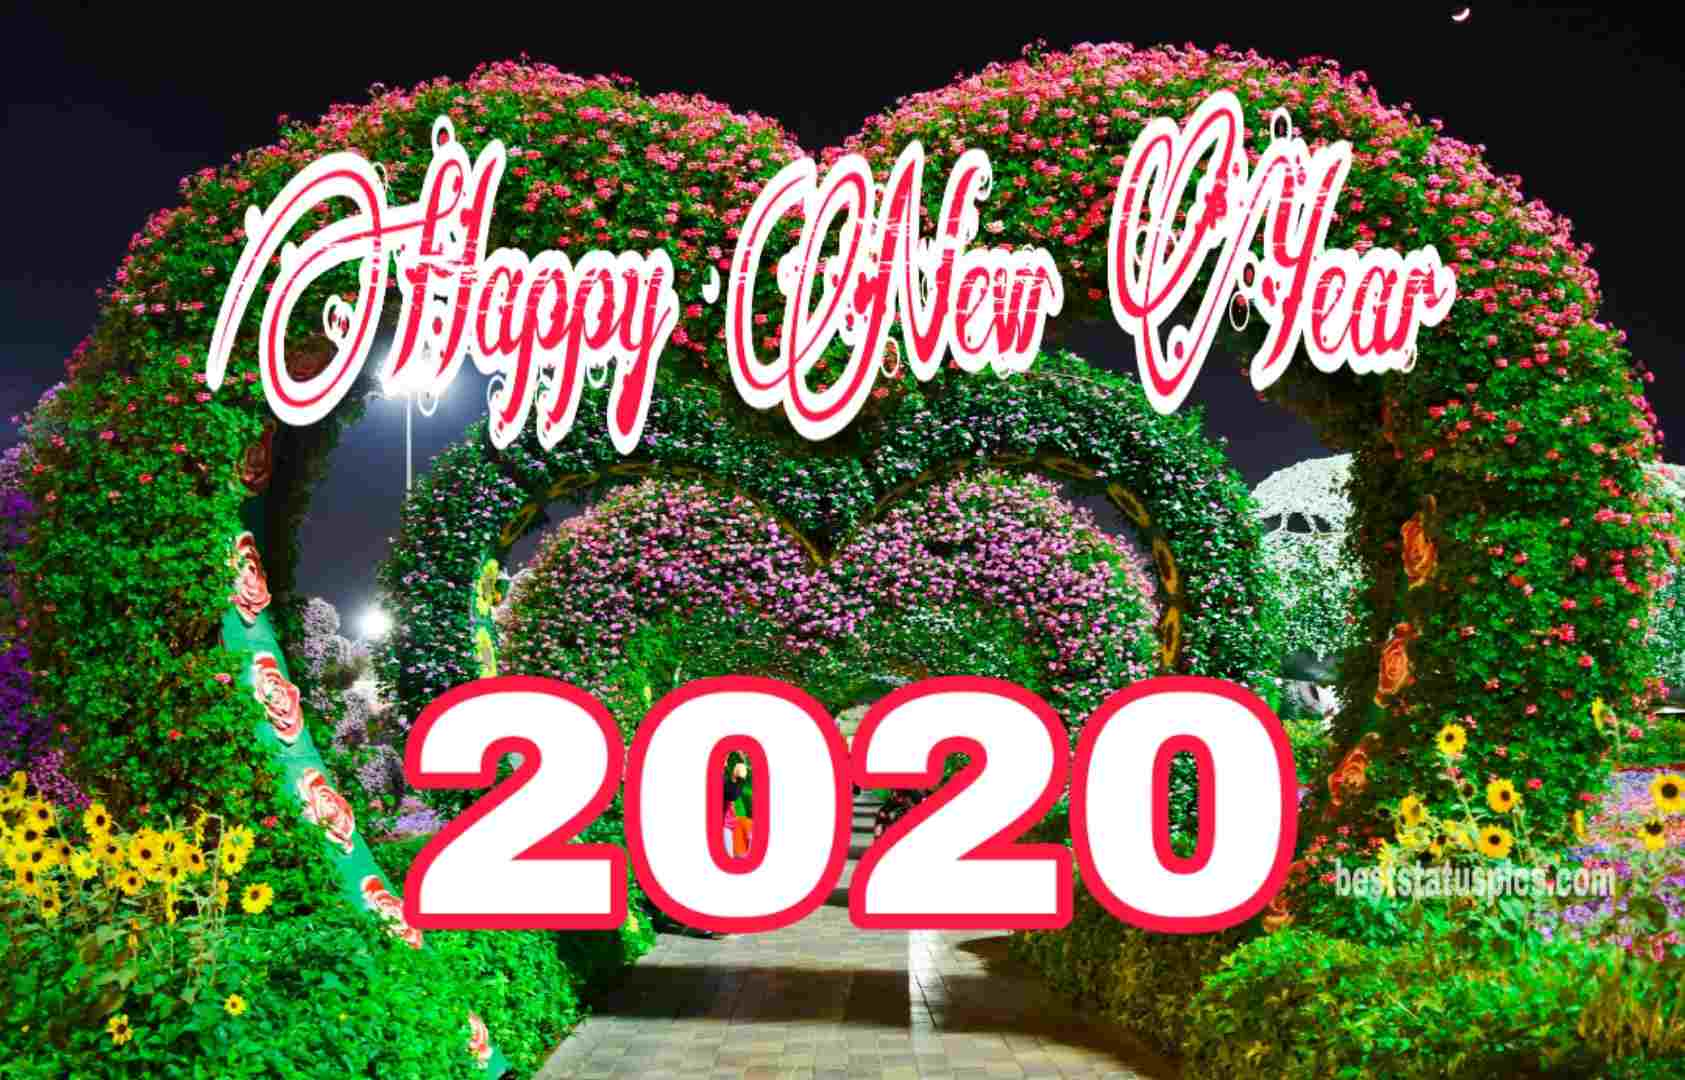 Happy New Year 2020 Image with love heart for Whatsapp